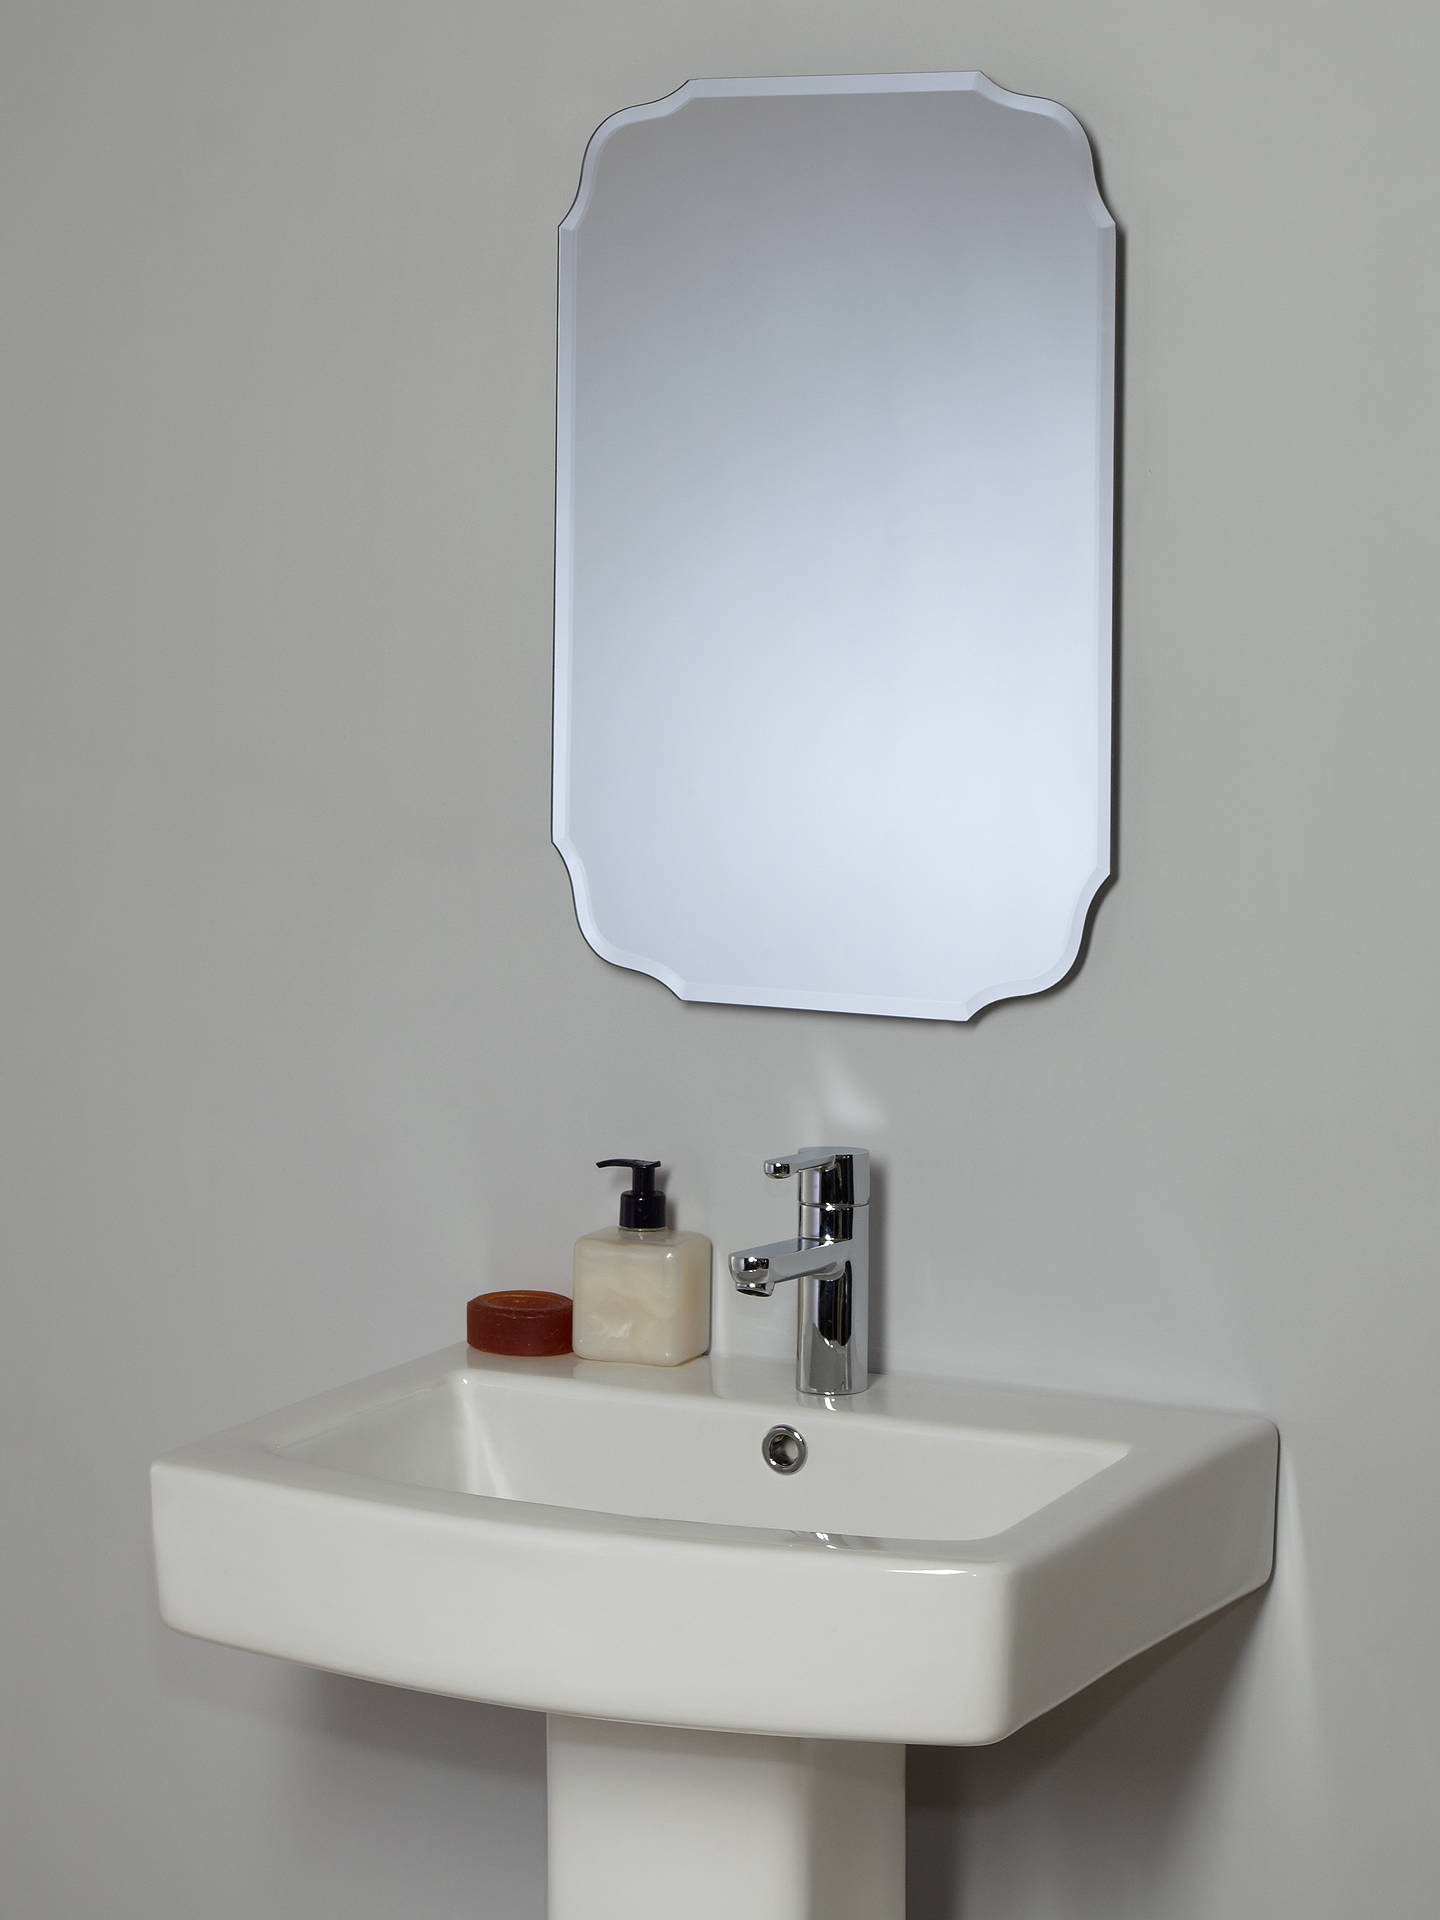 Wondrous John Lewis Partners Vintage Bathroom Wall Mirror Download Free Architecture Designs Sospemadebymaigaardcom